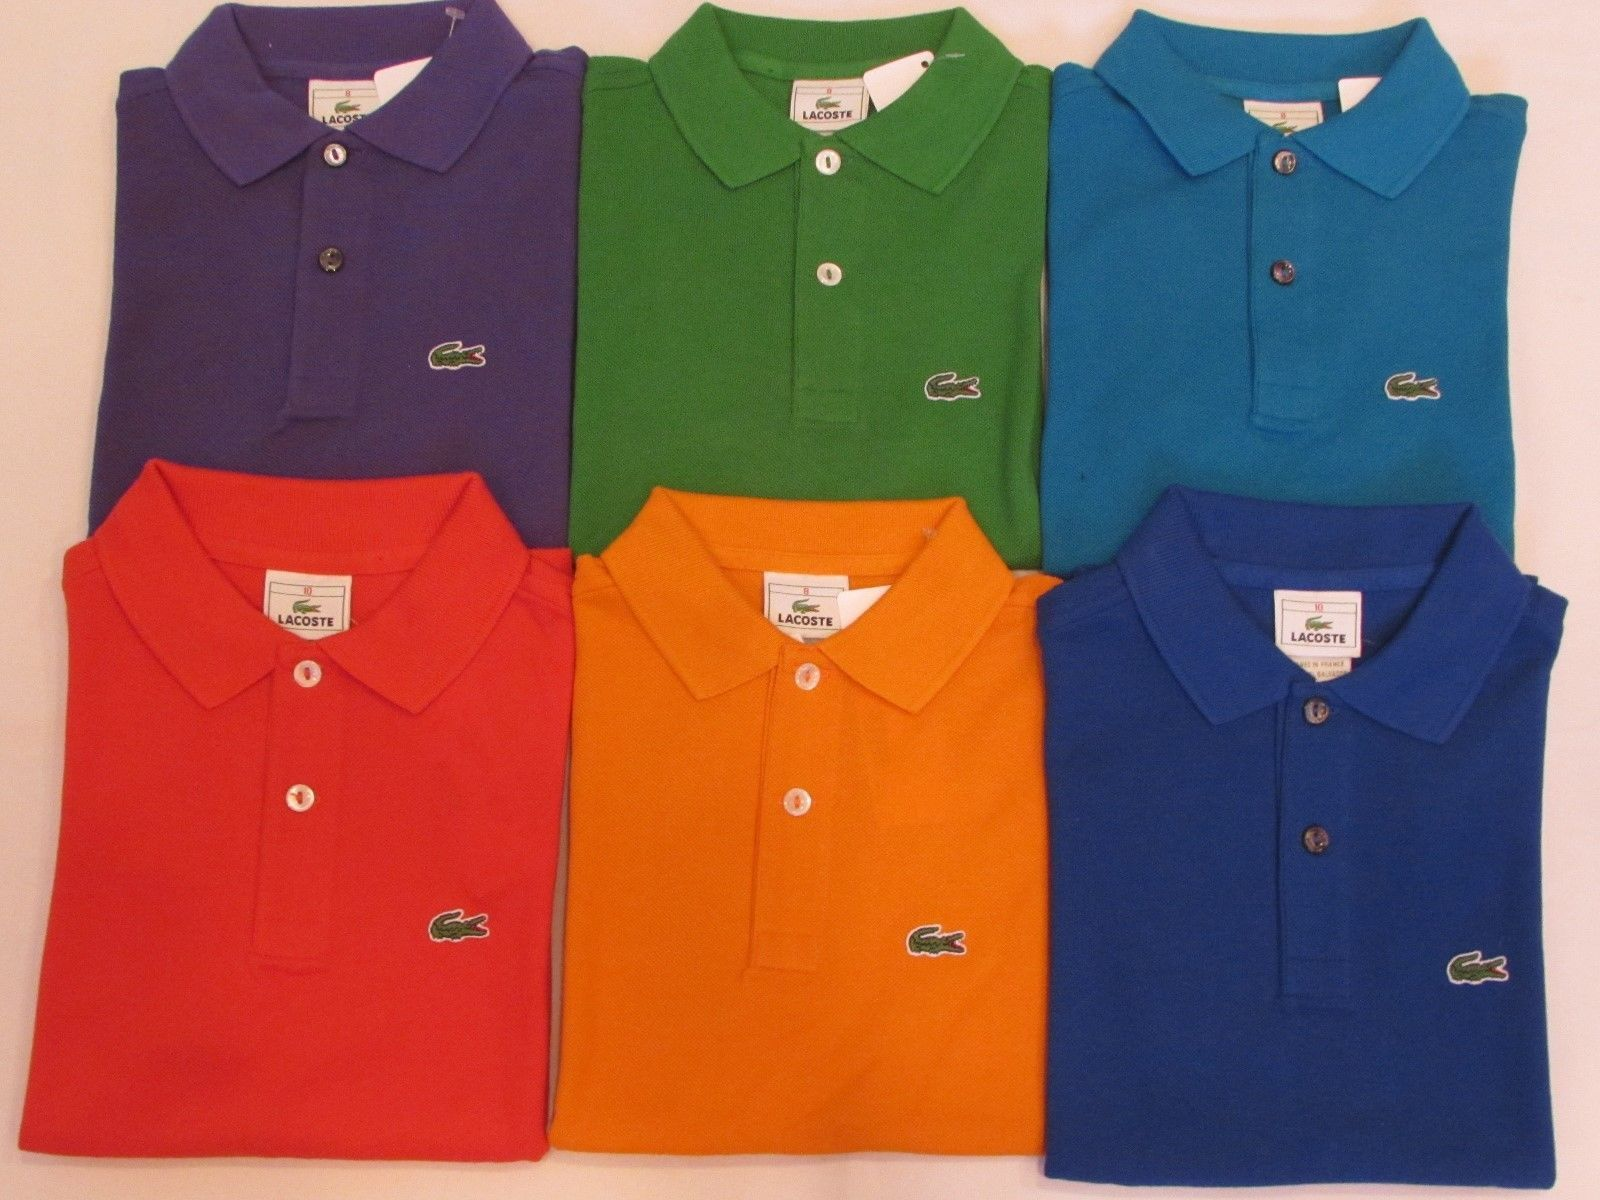 buy lacoste shirts